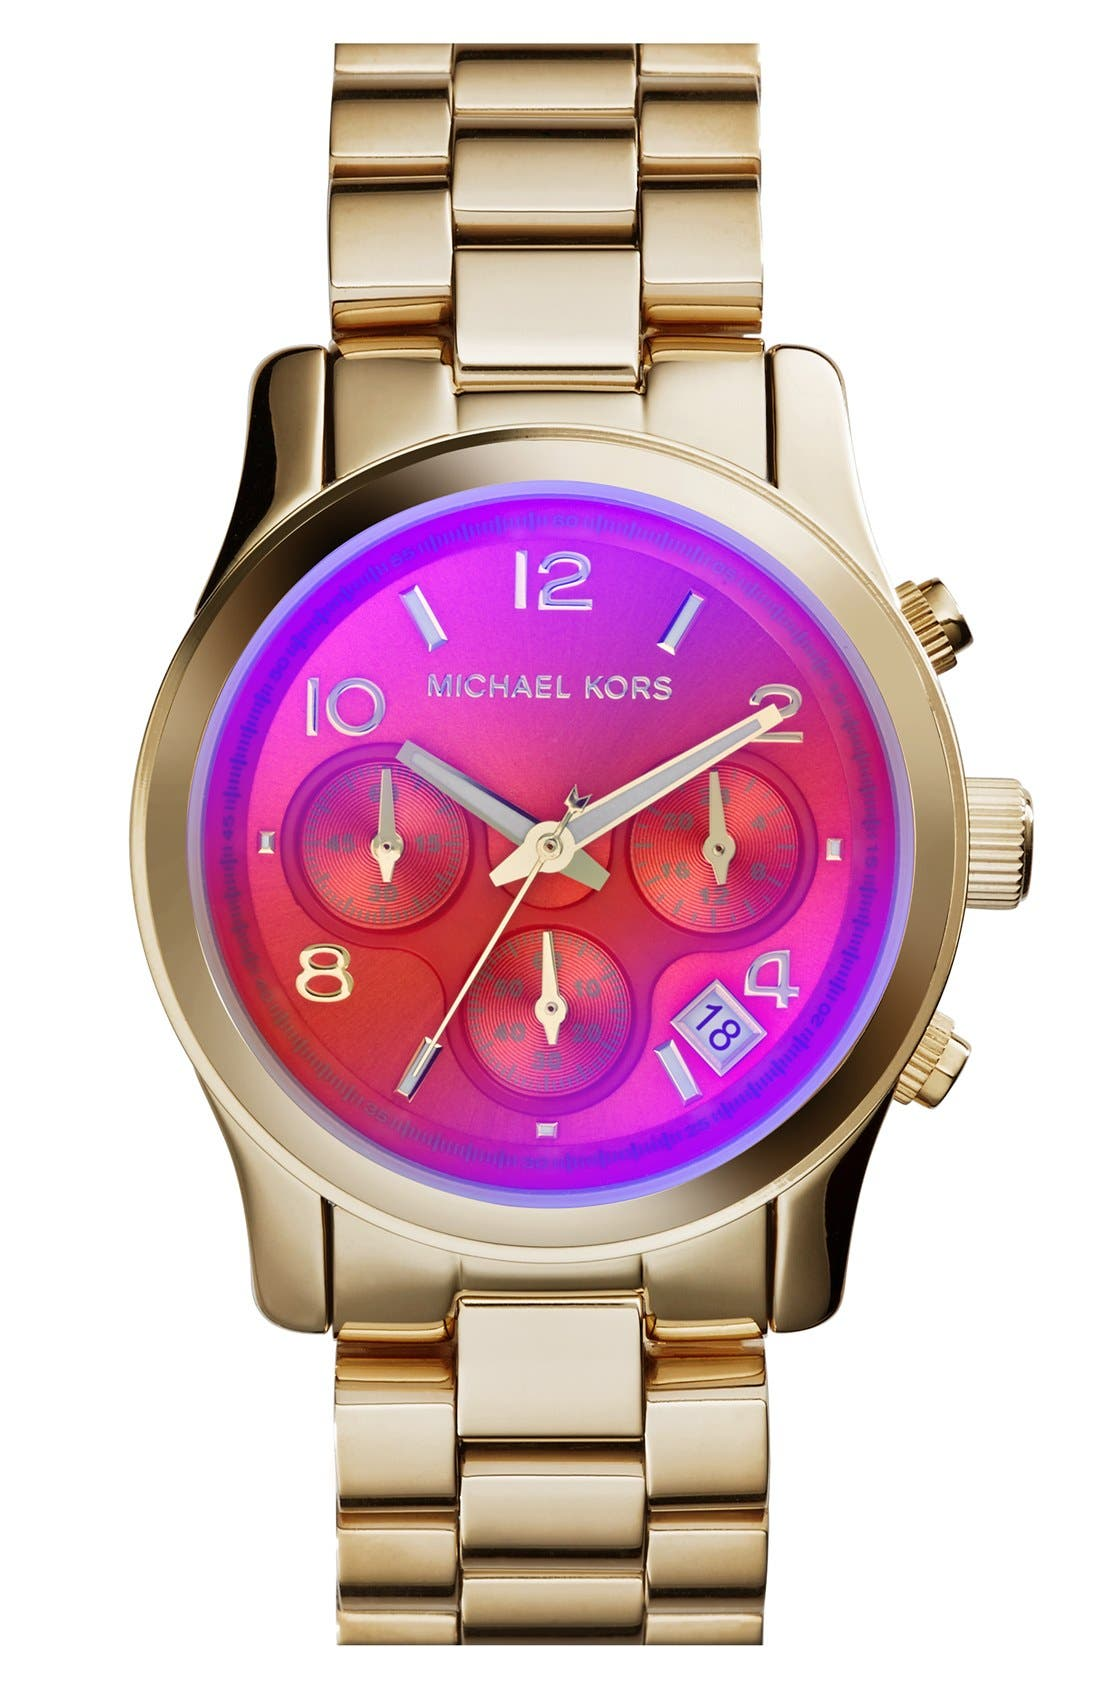 Main Image - Michael Kors 'Runway' Iridescent Crystal Chronograph Watch, 38mm